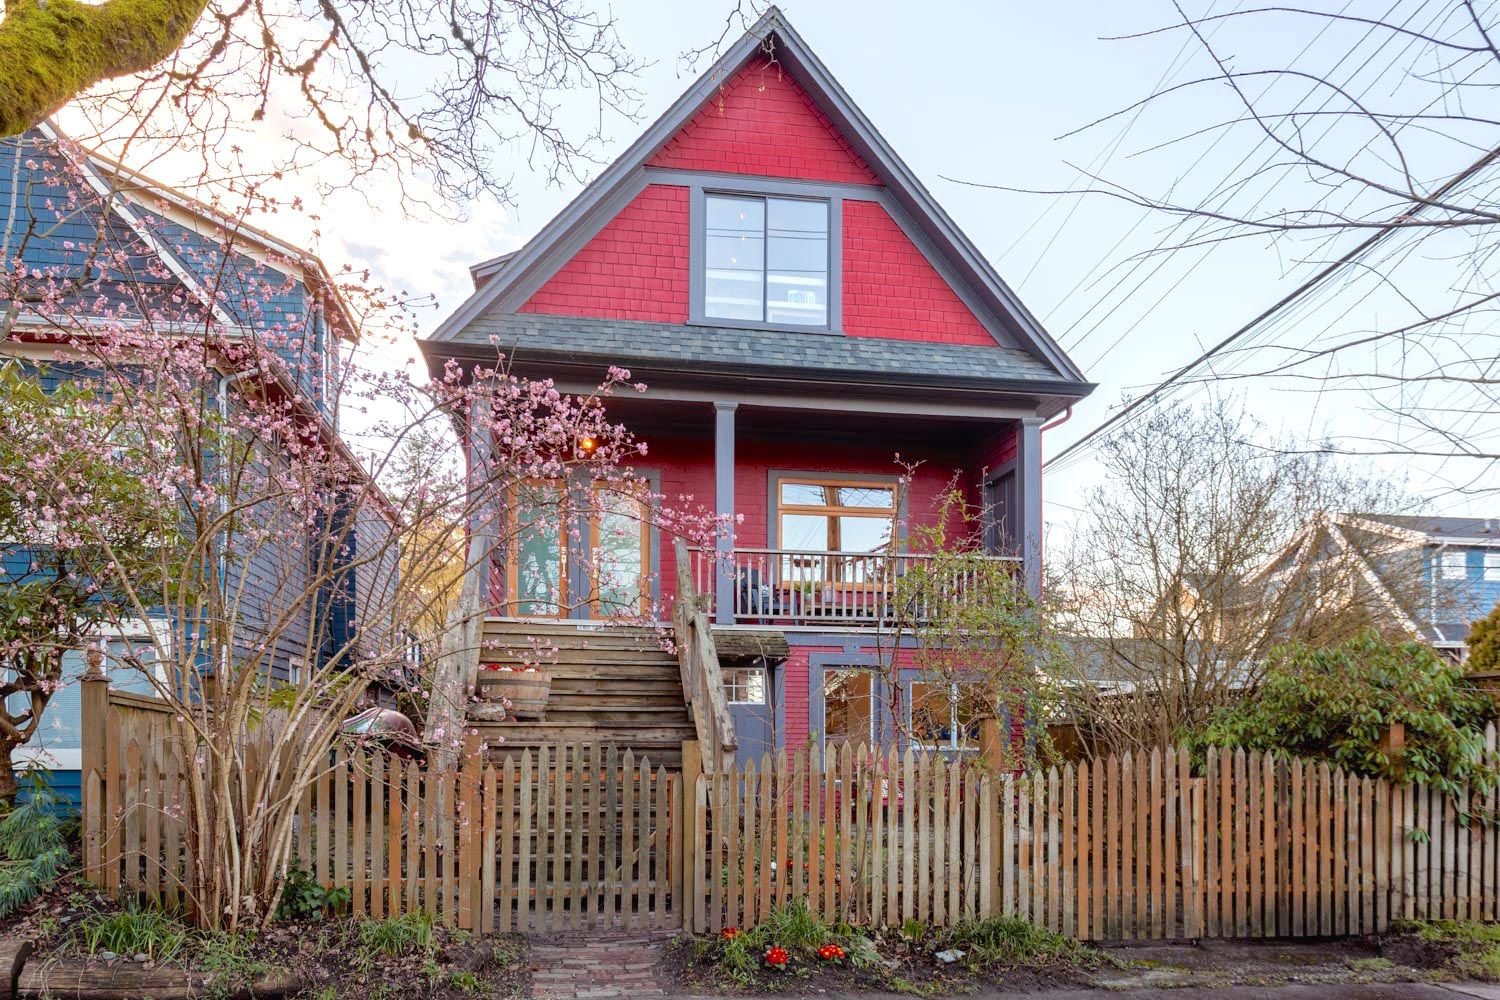 Main Photo: 2833 WINDSOR Street in Vancouver: Mount Pleasant VE House for sale (Vancouver East)  : MLS®# R2238720